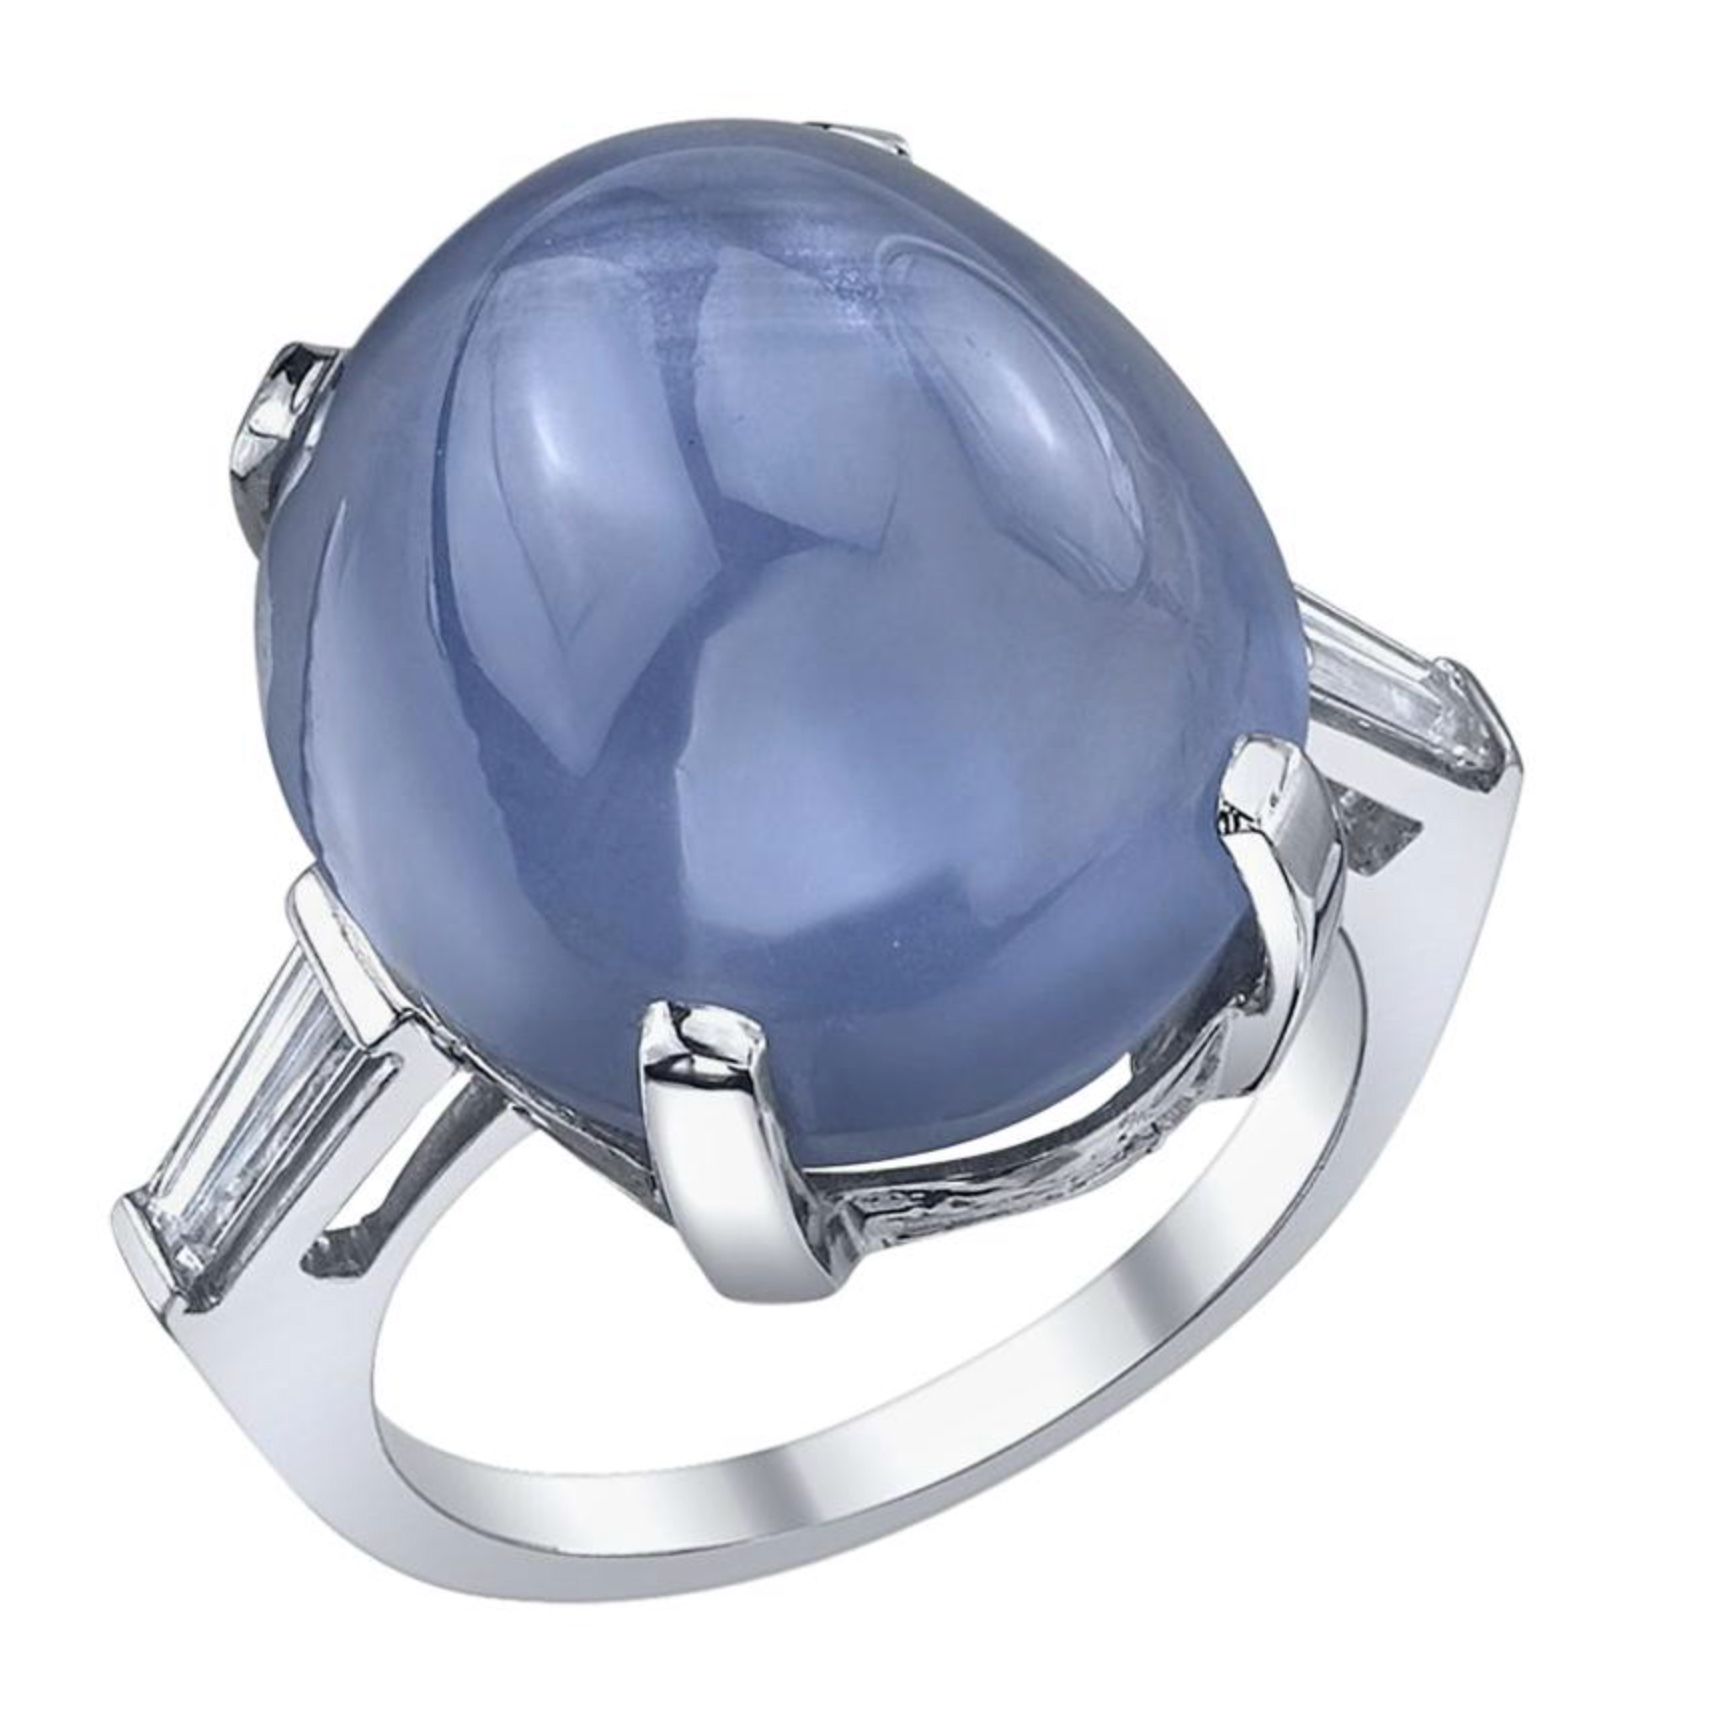 28 Carat Vintage Blue Star Sapphire and Diamond 3-Stone Ring circa 1945-1955